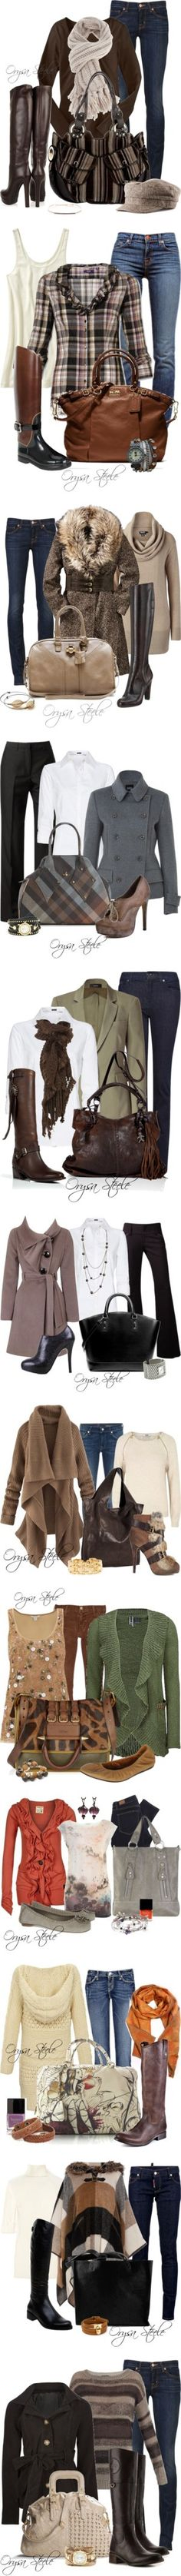 """Fall Fashion"" by orysa on Polyvore"